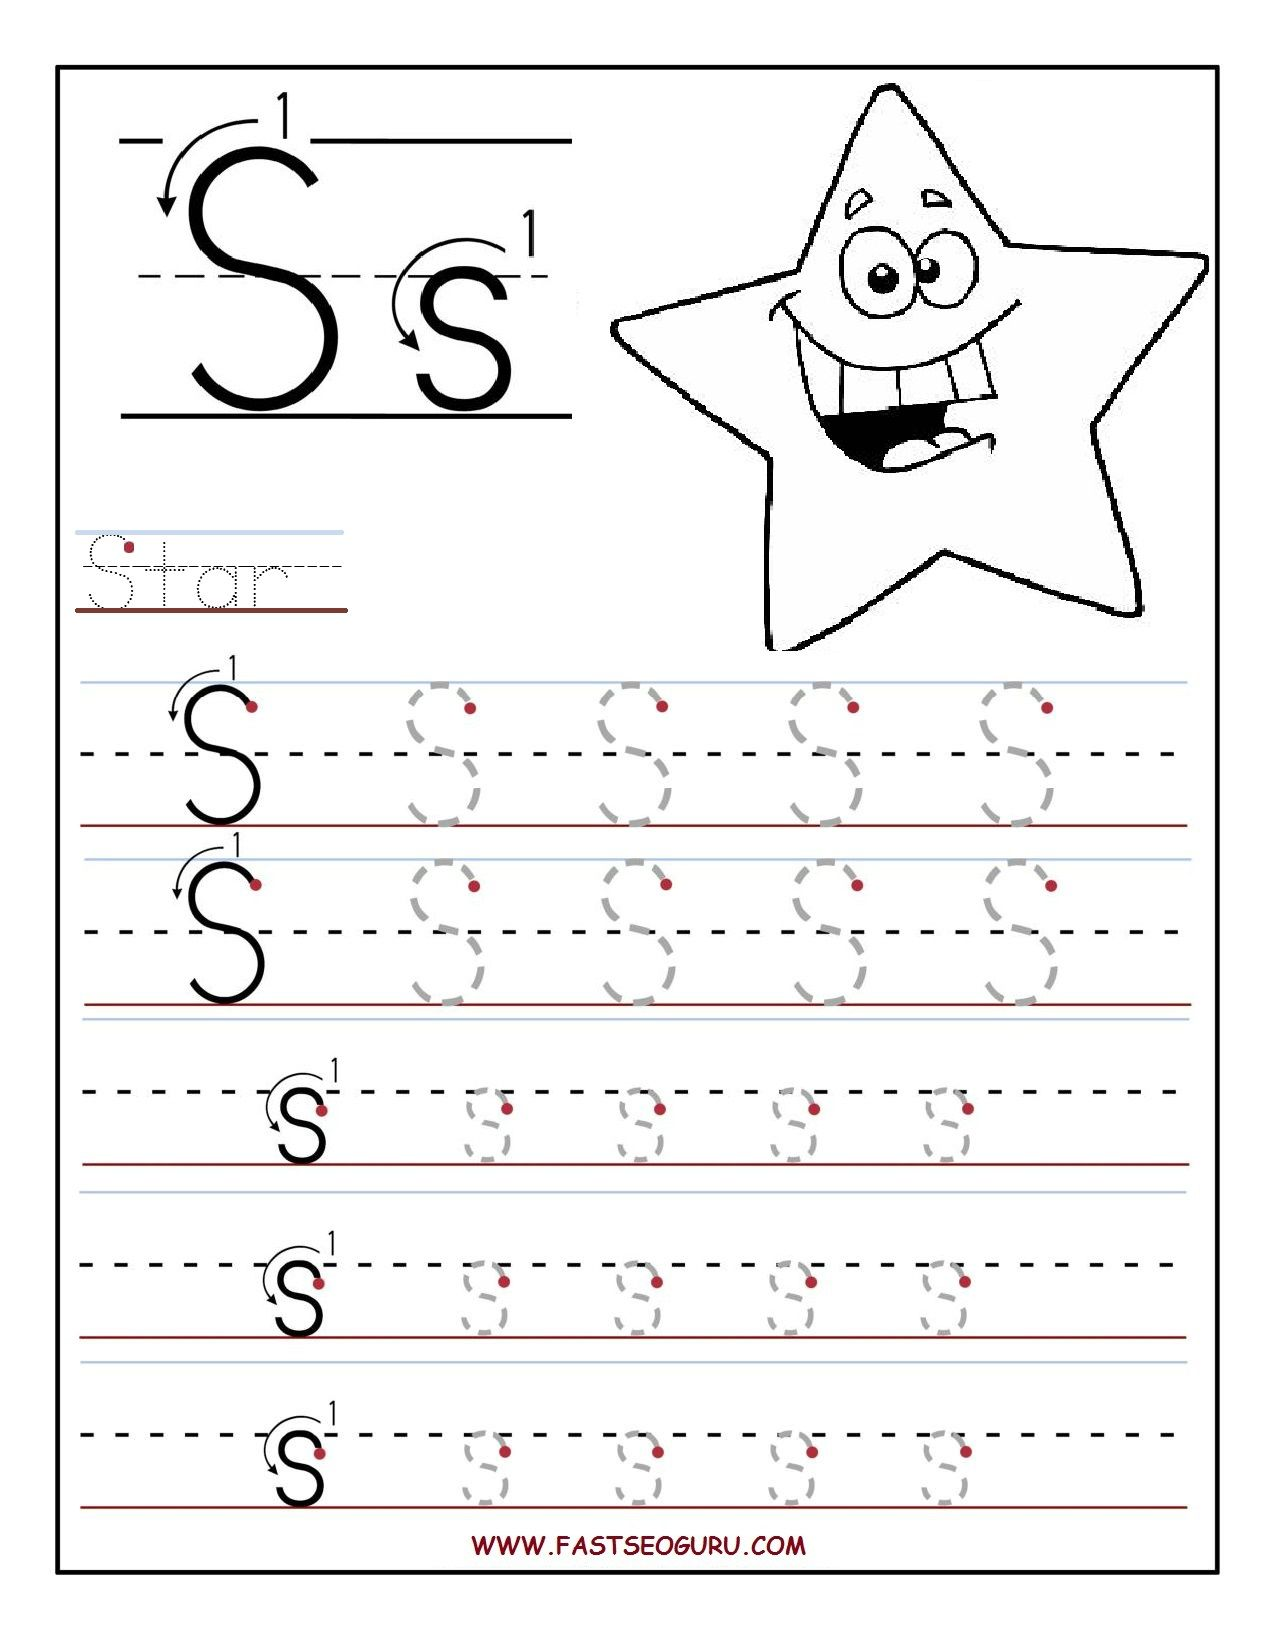 worksheet Trace The Letter S Worksheets printable letter s tracing worksheets for preschool the preschool